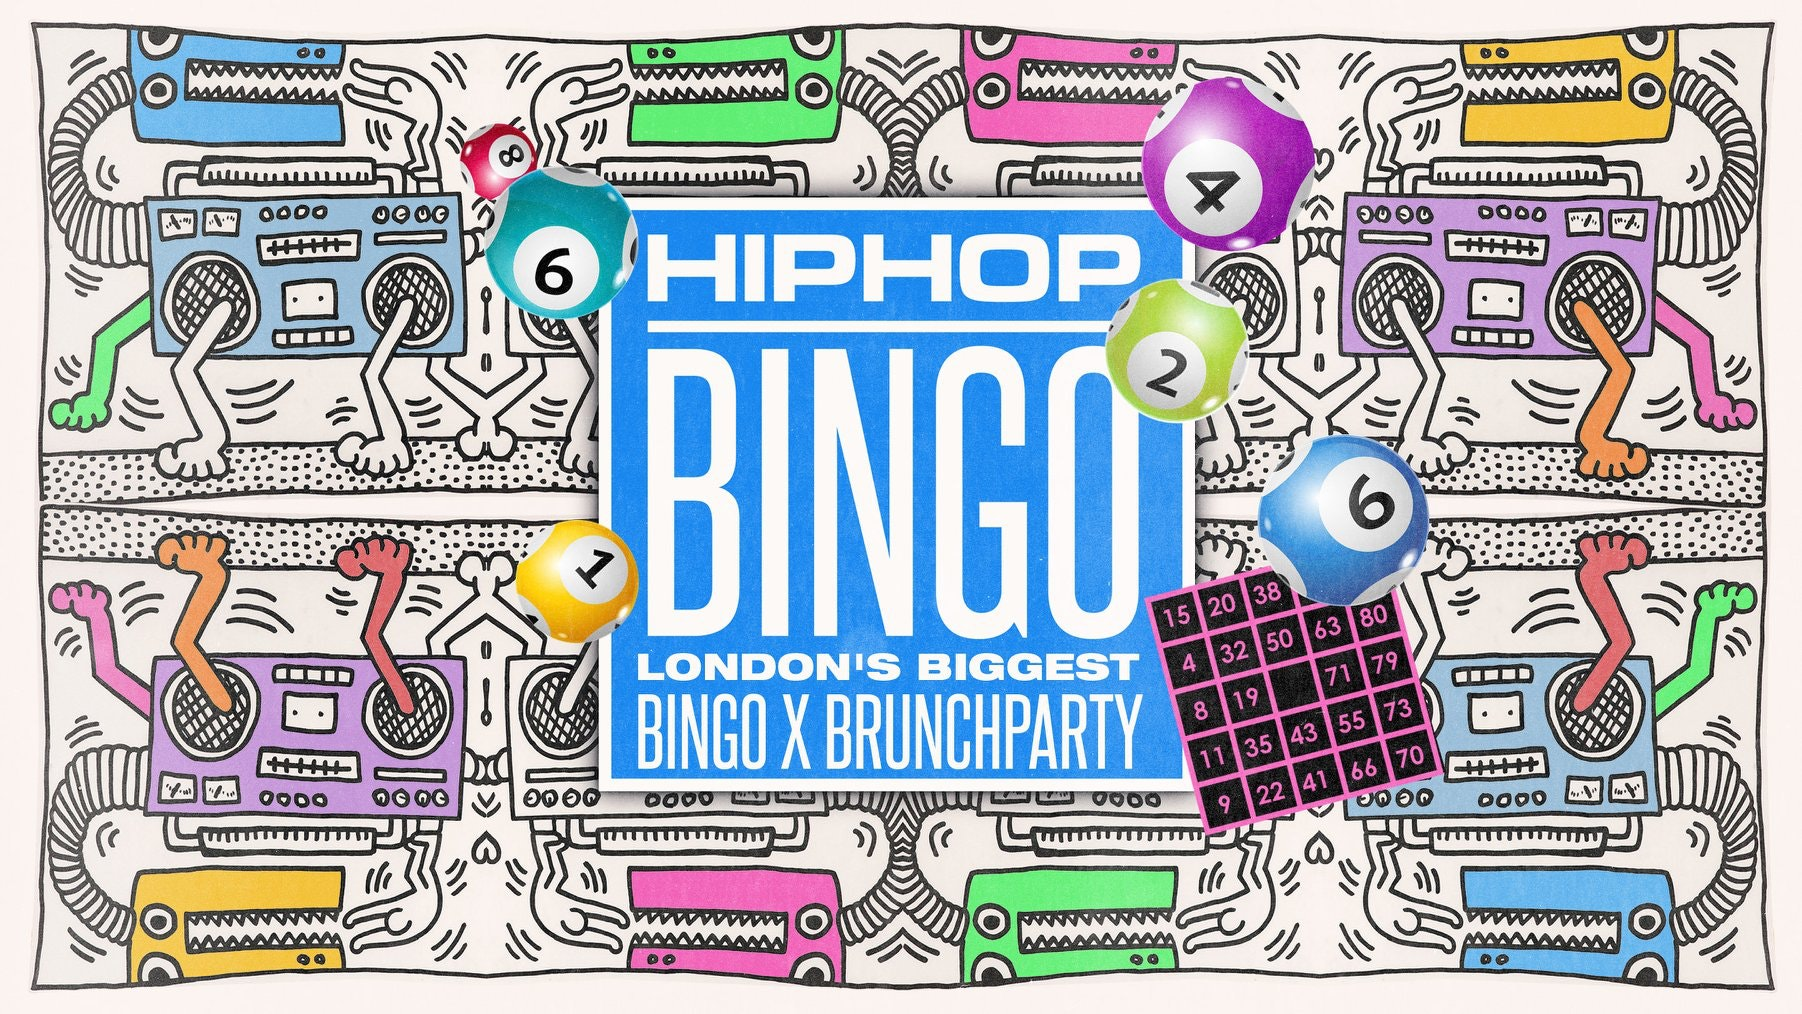 The London HipHop Bingo Brunch 🎱 March 29th | Live at Dabbers 🎉